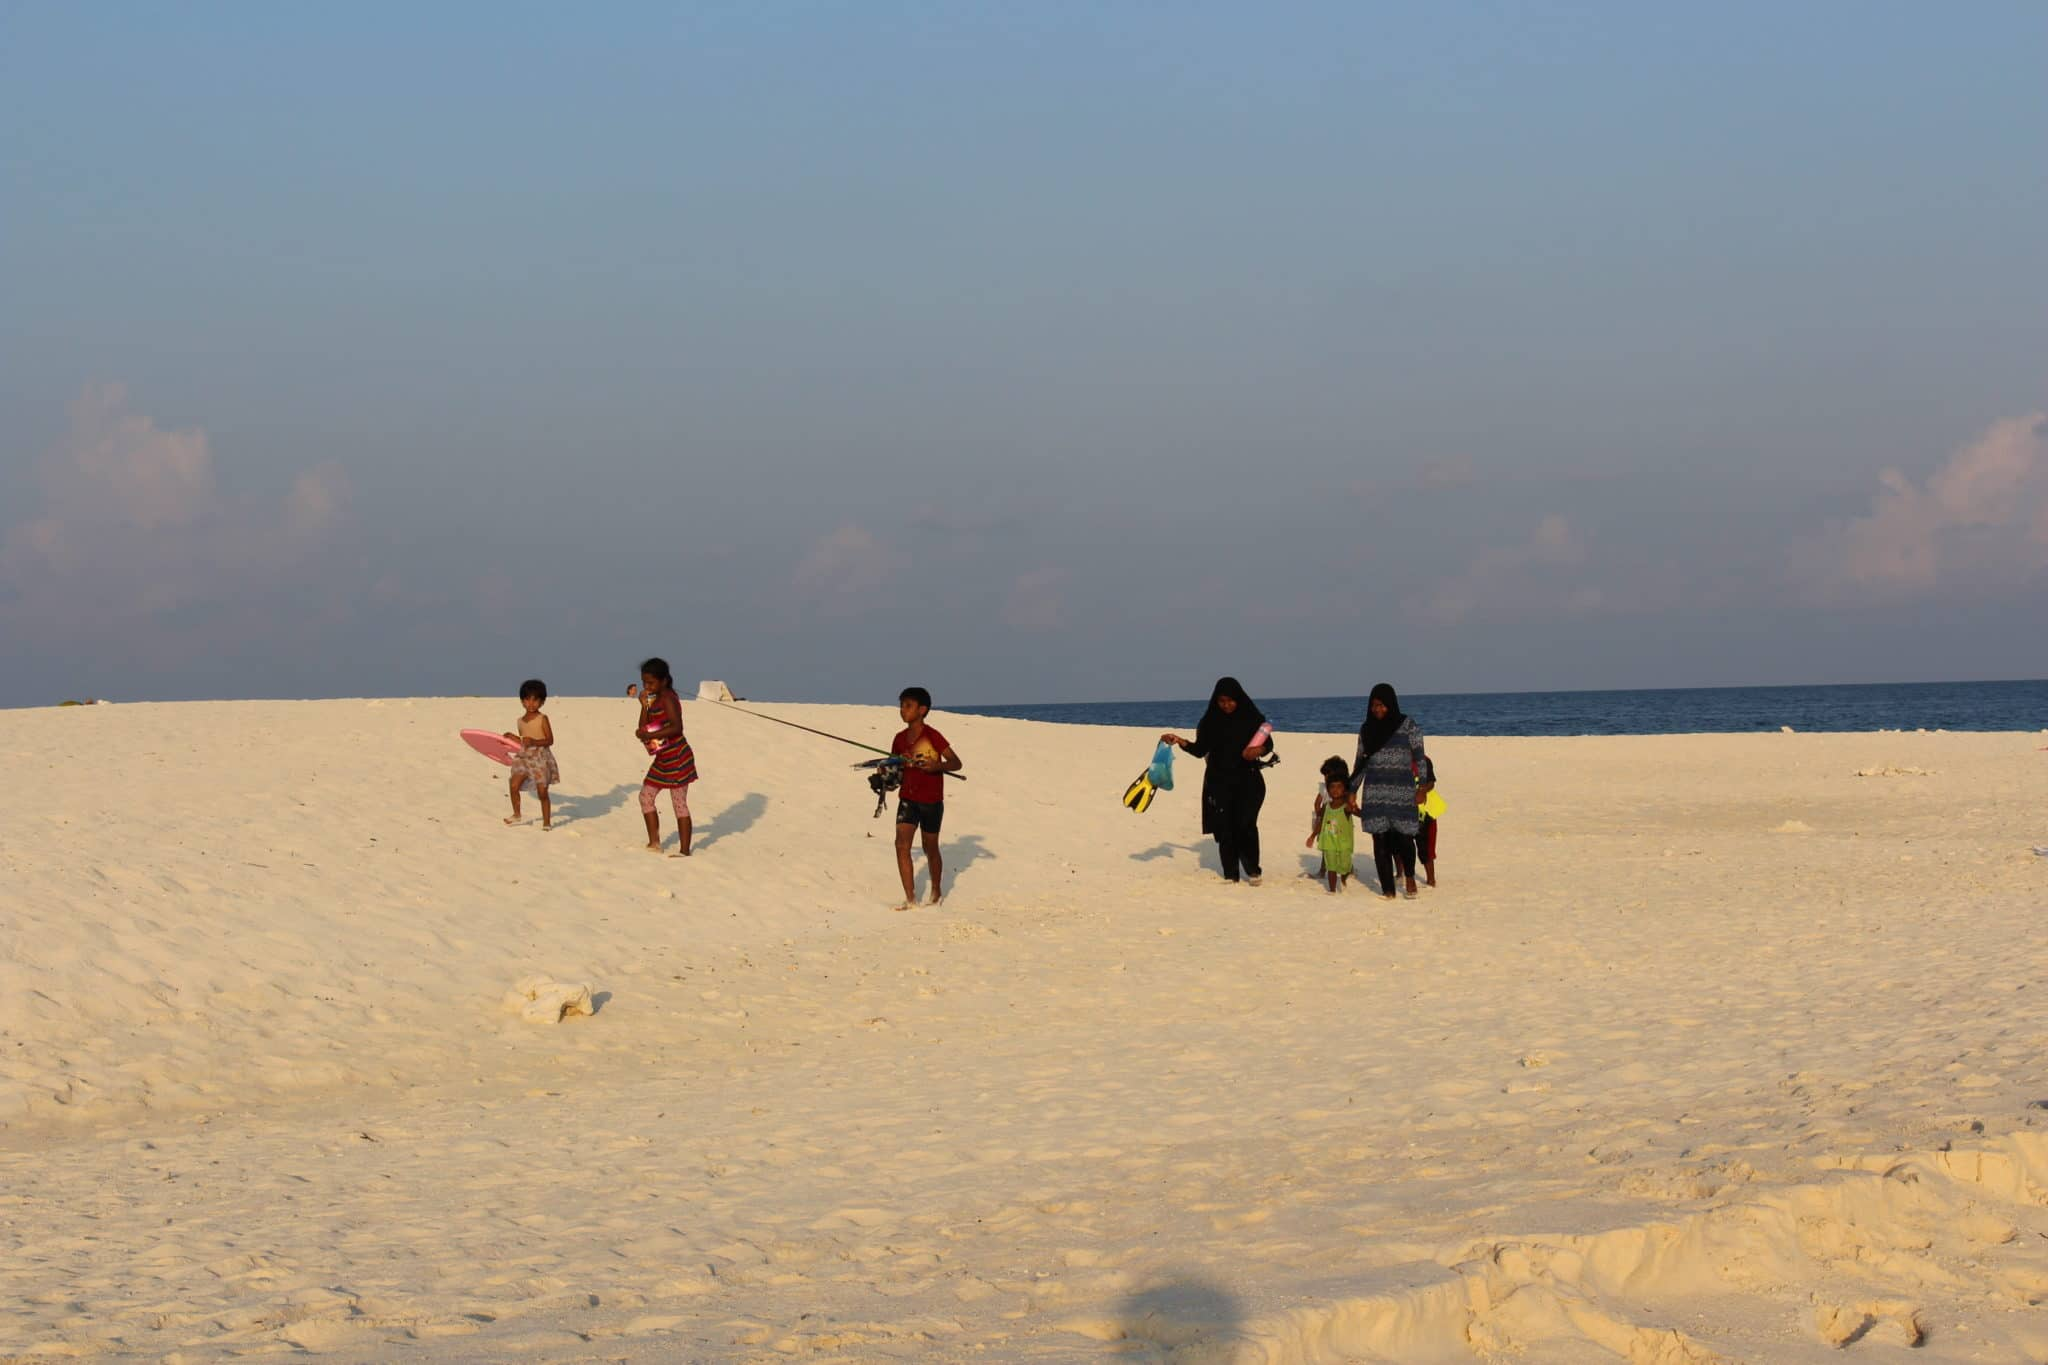 Let's get to know the Maldives better? - Wandering Life